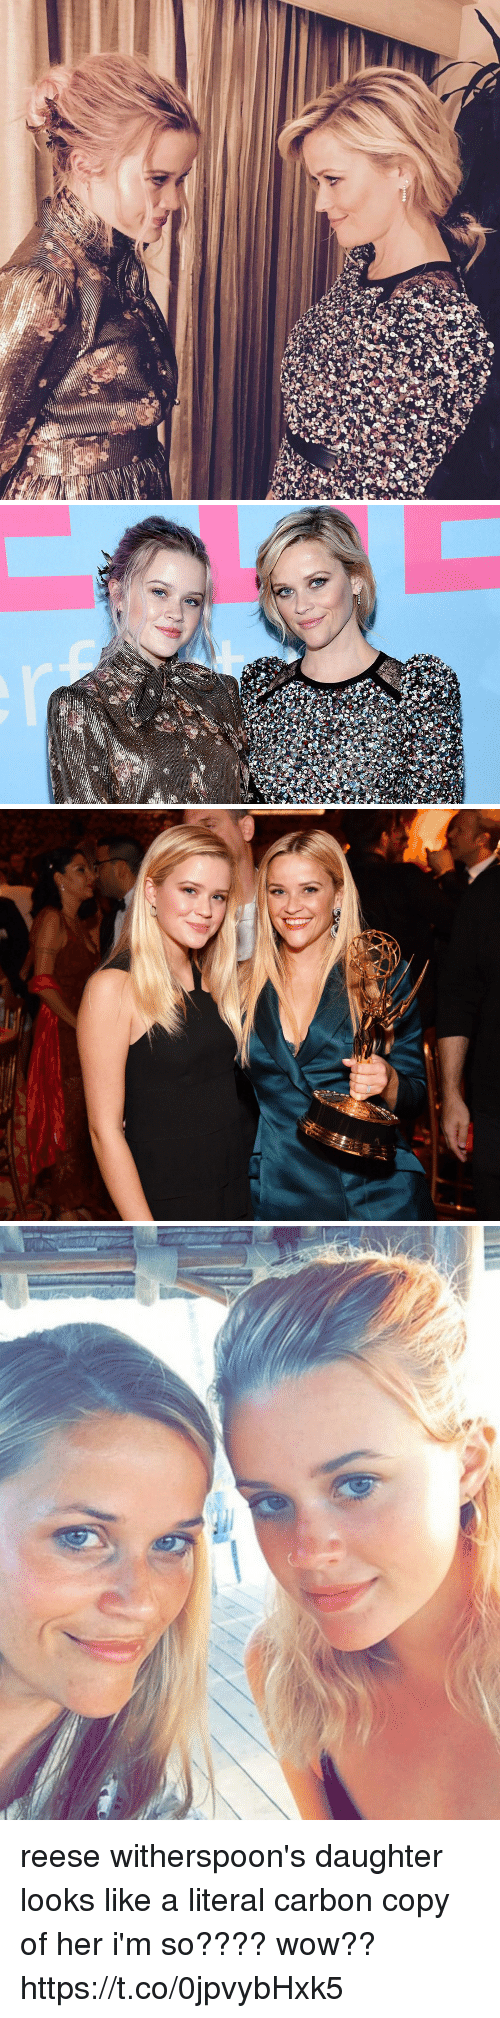 Wow, Girl Memes, and Her: reese witherspoon's daughter looks like a literal carbon copy of her i'm so???? wow?? https://t.co/0jpvybHxk5